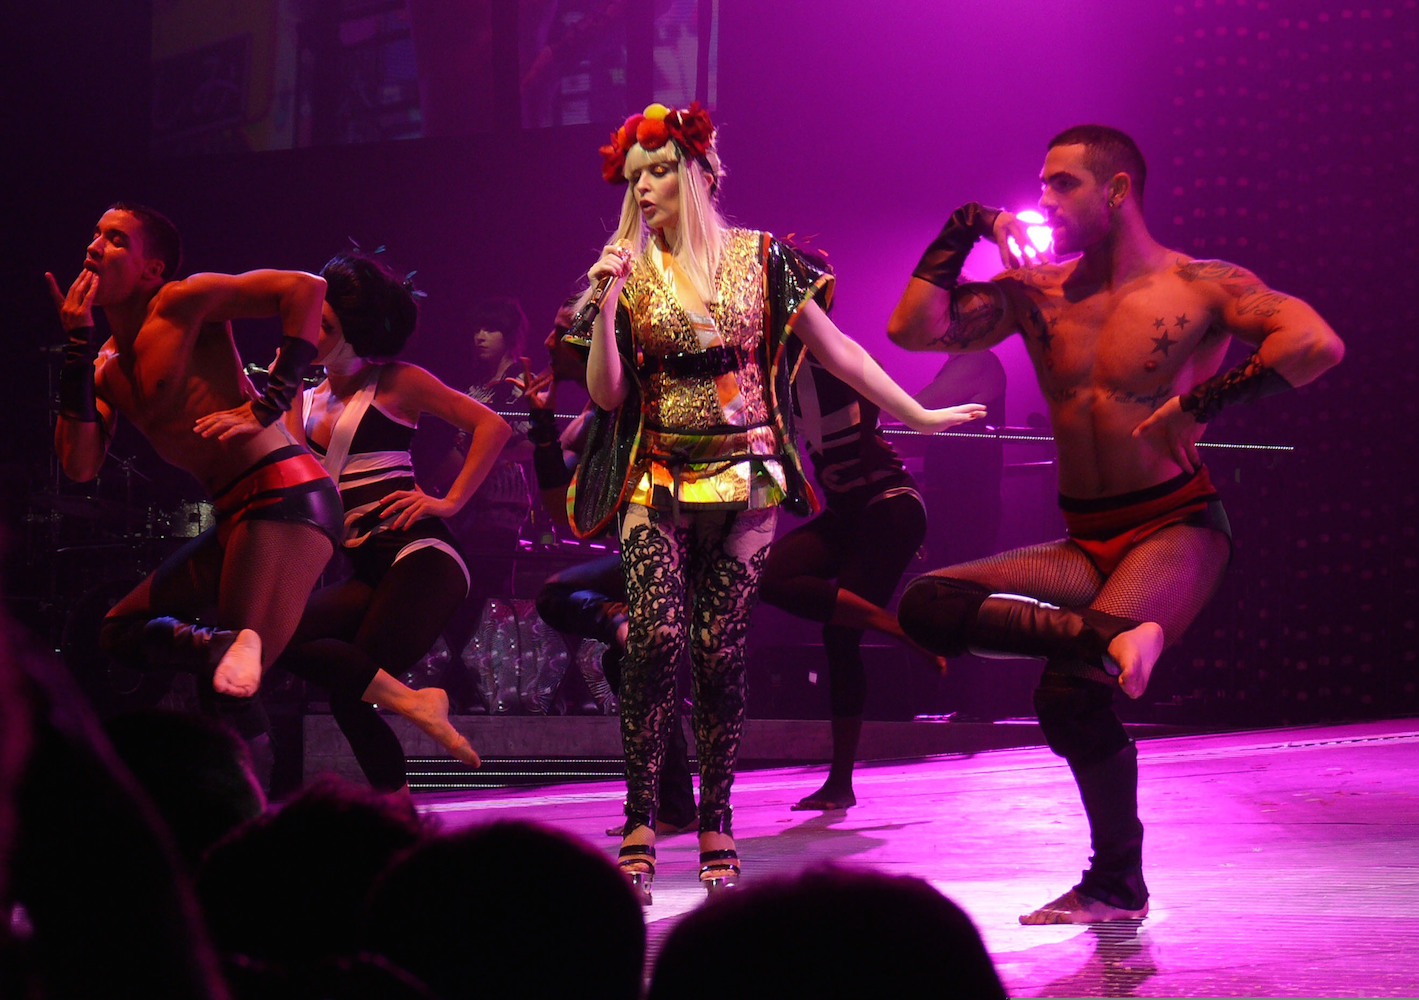 Minogues kylie greatest showgirl outfits time new photo